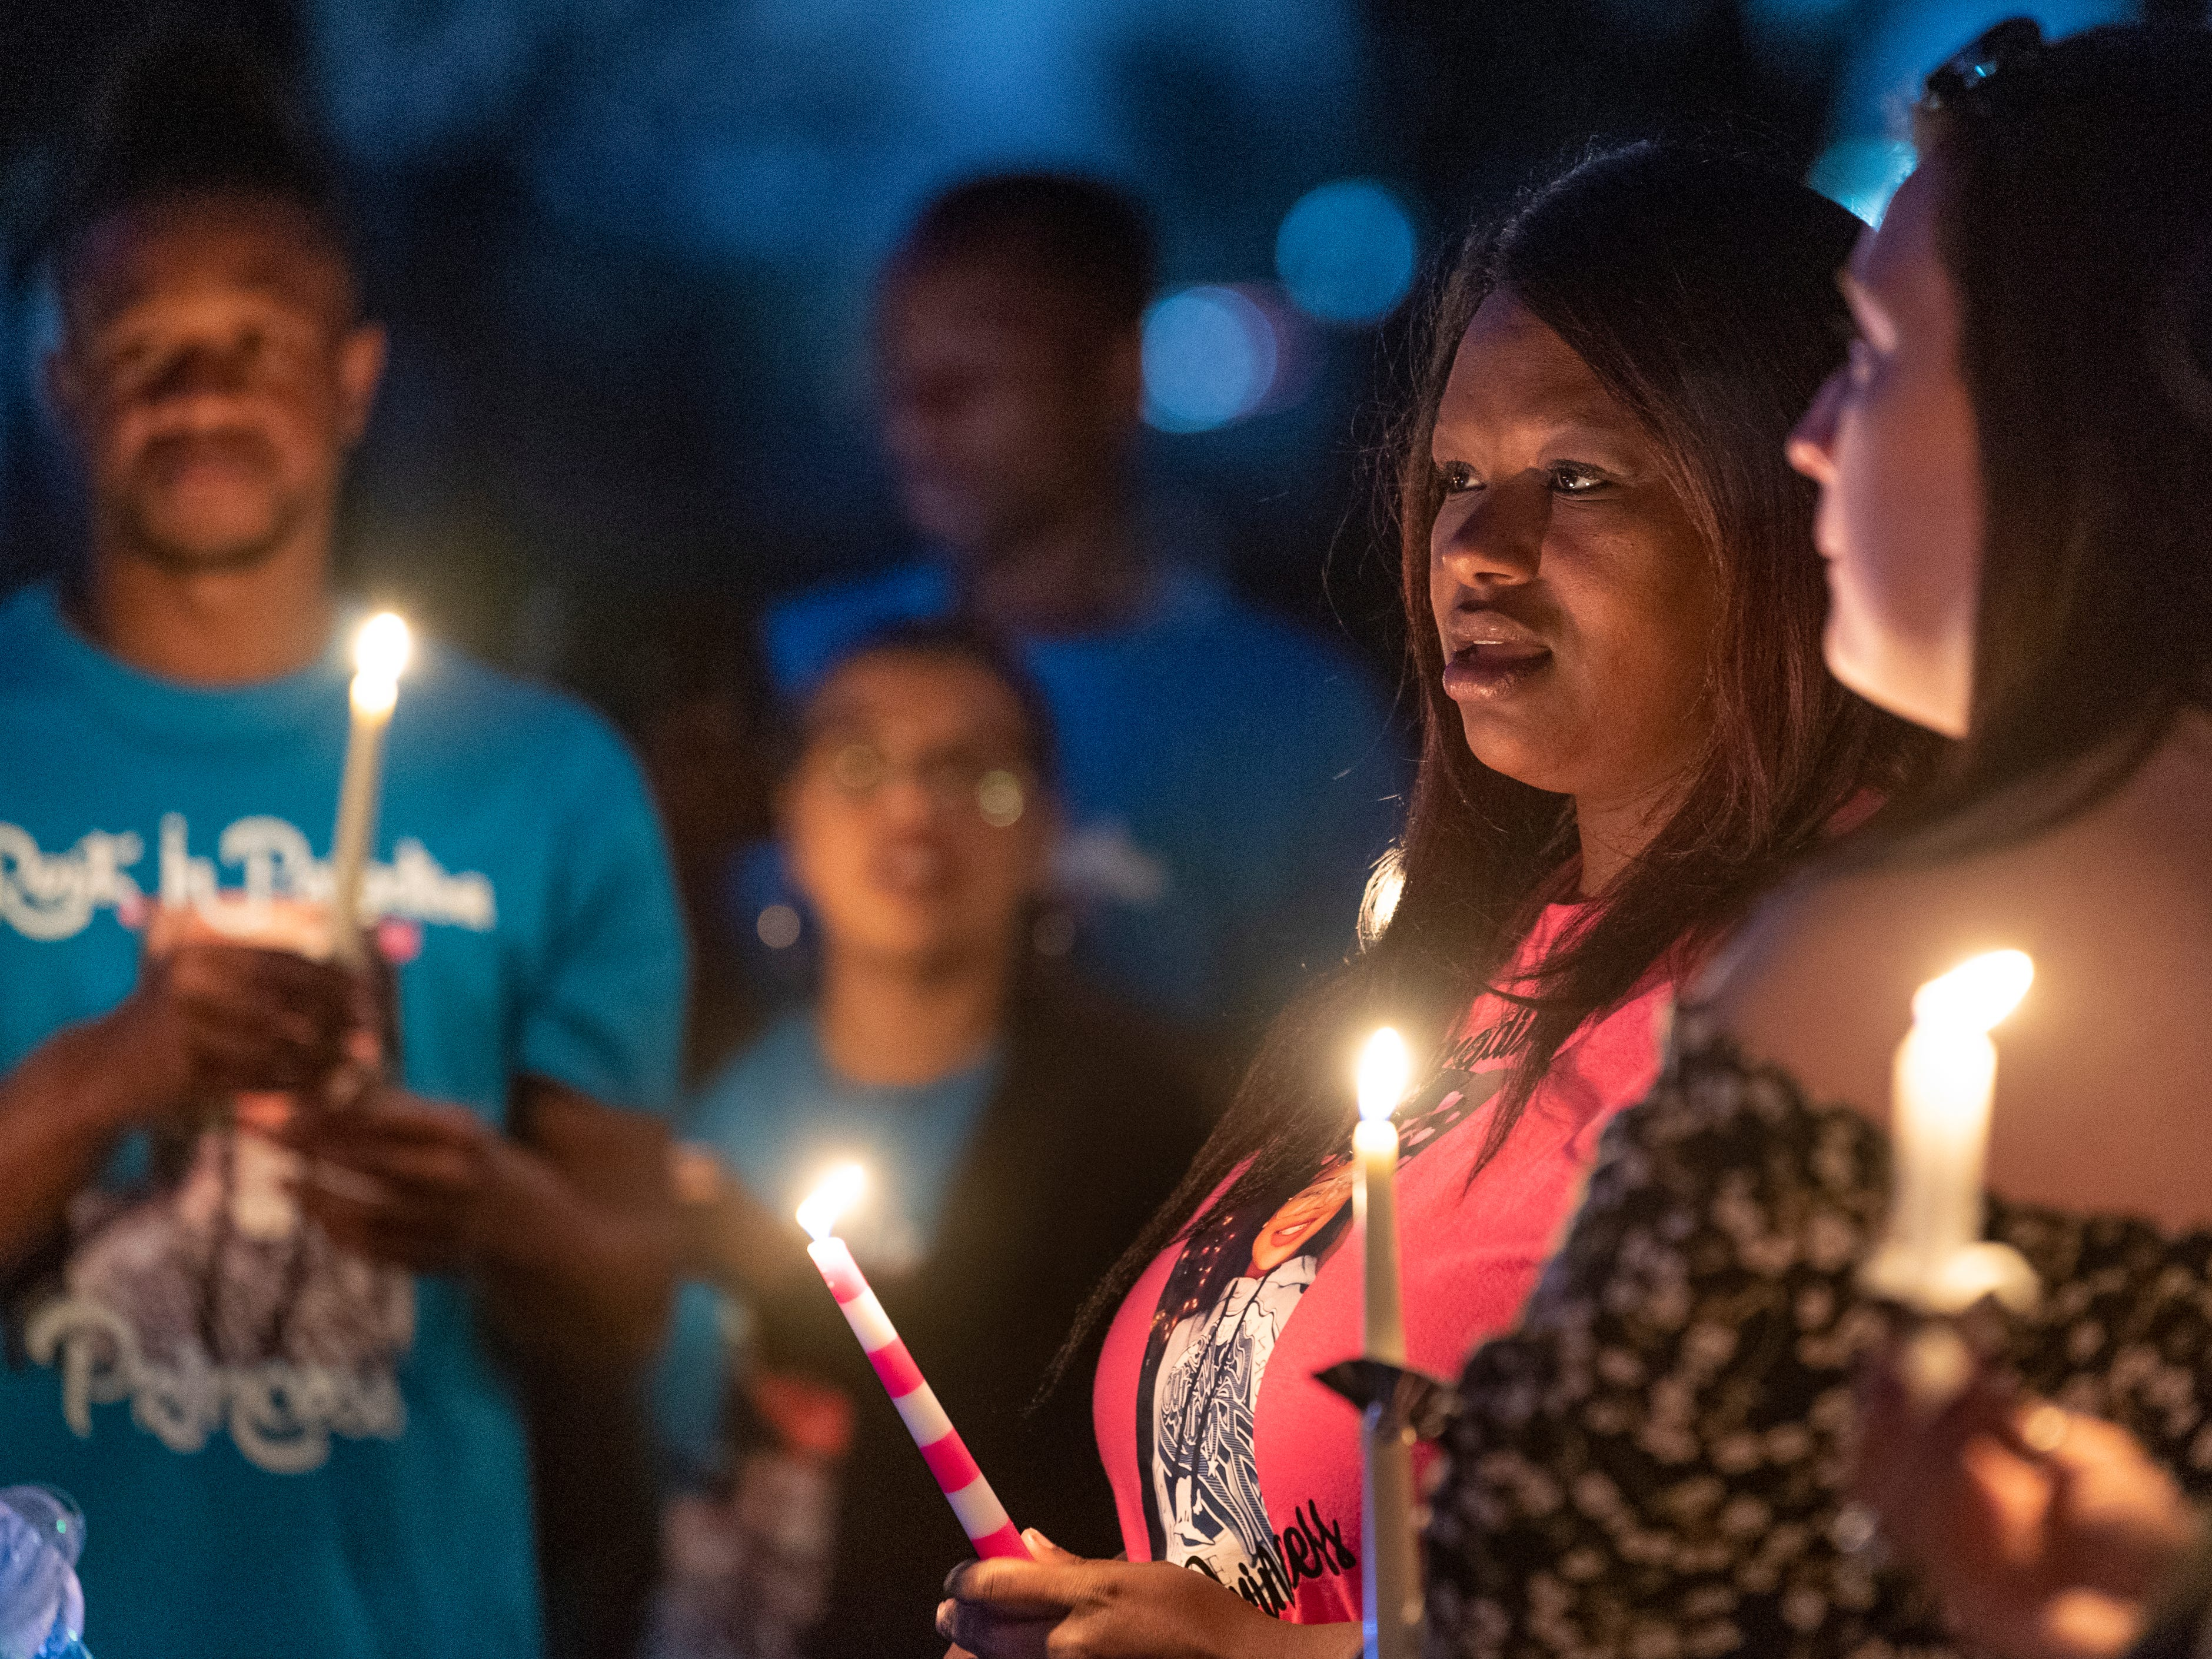 Monisha Alexander, center, is surrounded by family and friends of her daughter Dynasty Alexander at Elk Bayou Regional Park on Saturday, March 16, 2019. Dynasty was remembered with birthday cake, a balloon launch and a candle light vigil. Alexander's body was found in an orchard outside of the city on March 3. She had been strangled and shot.